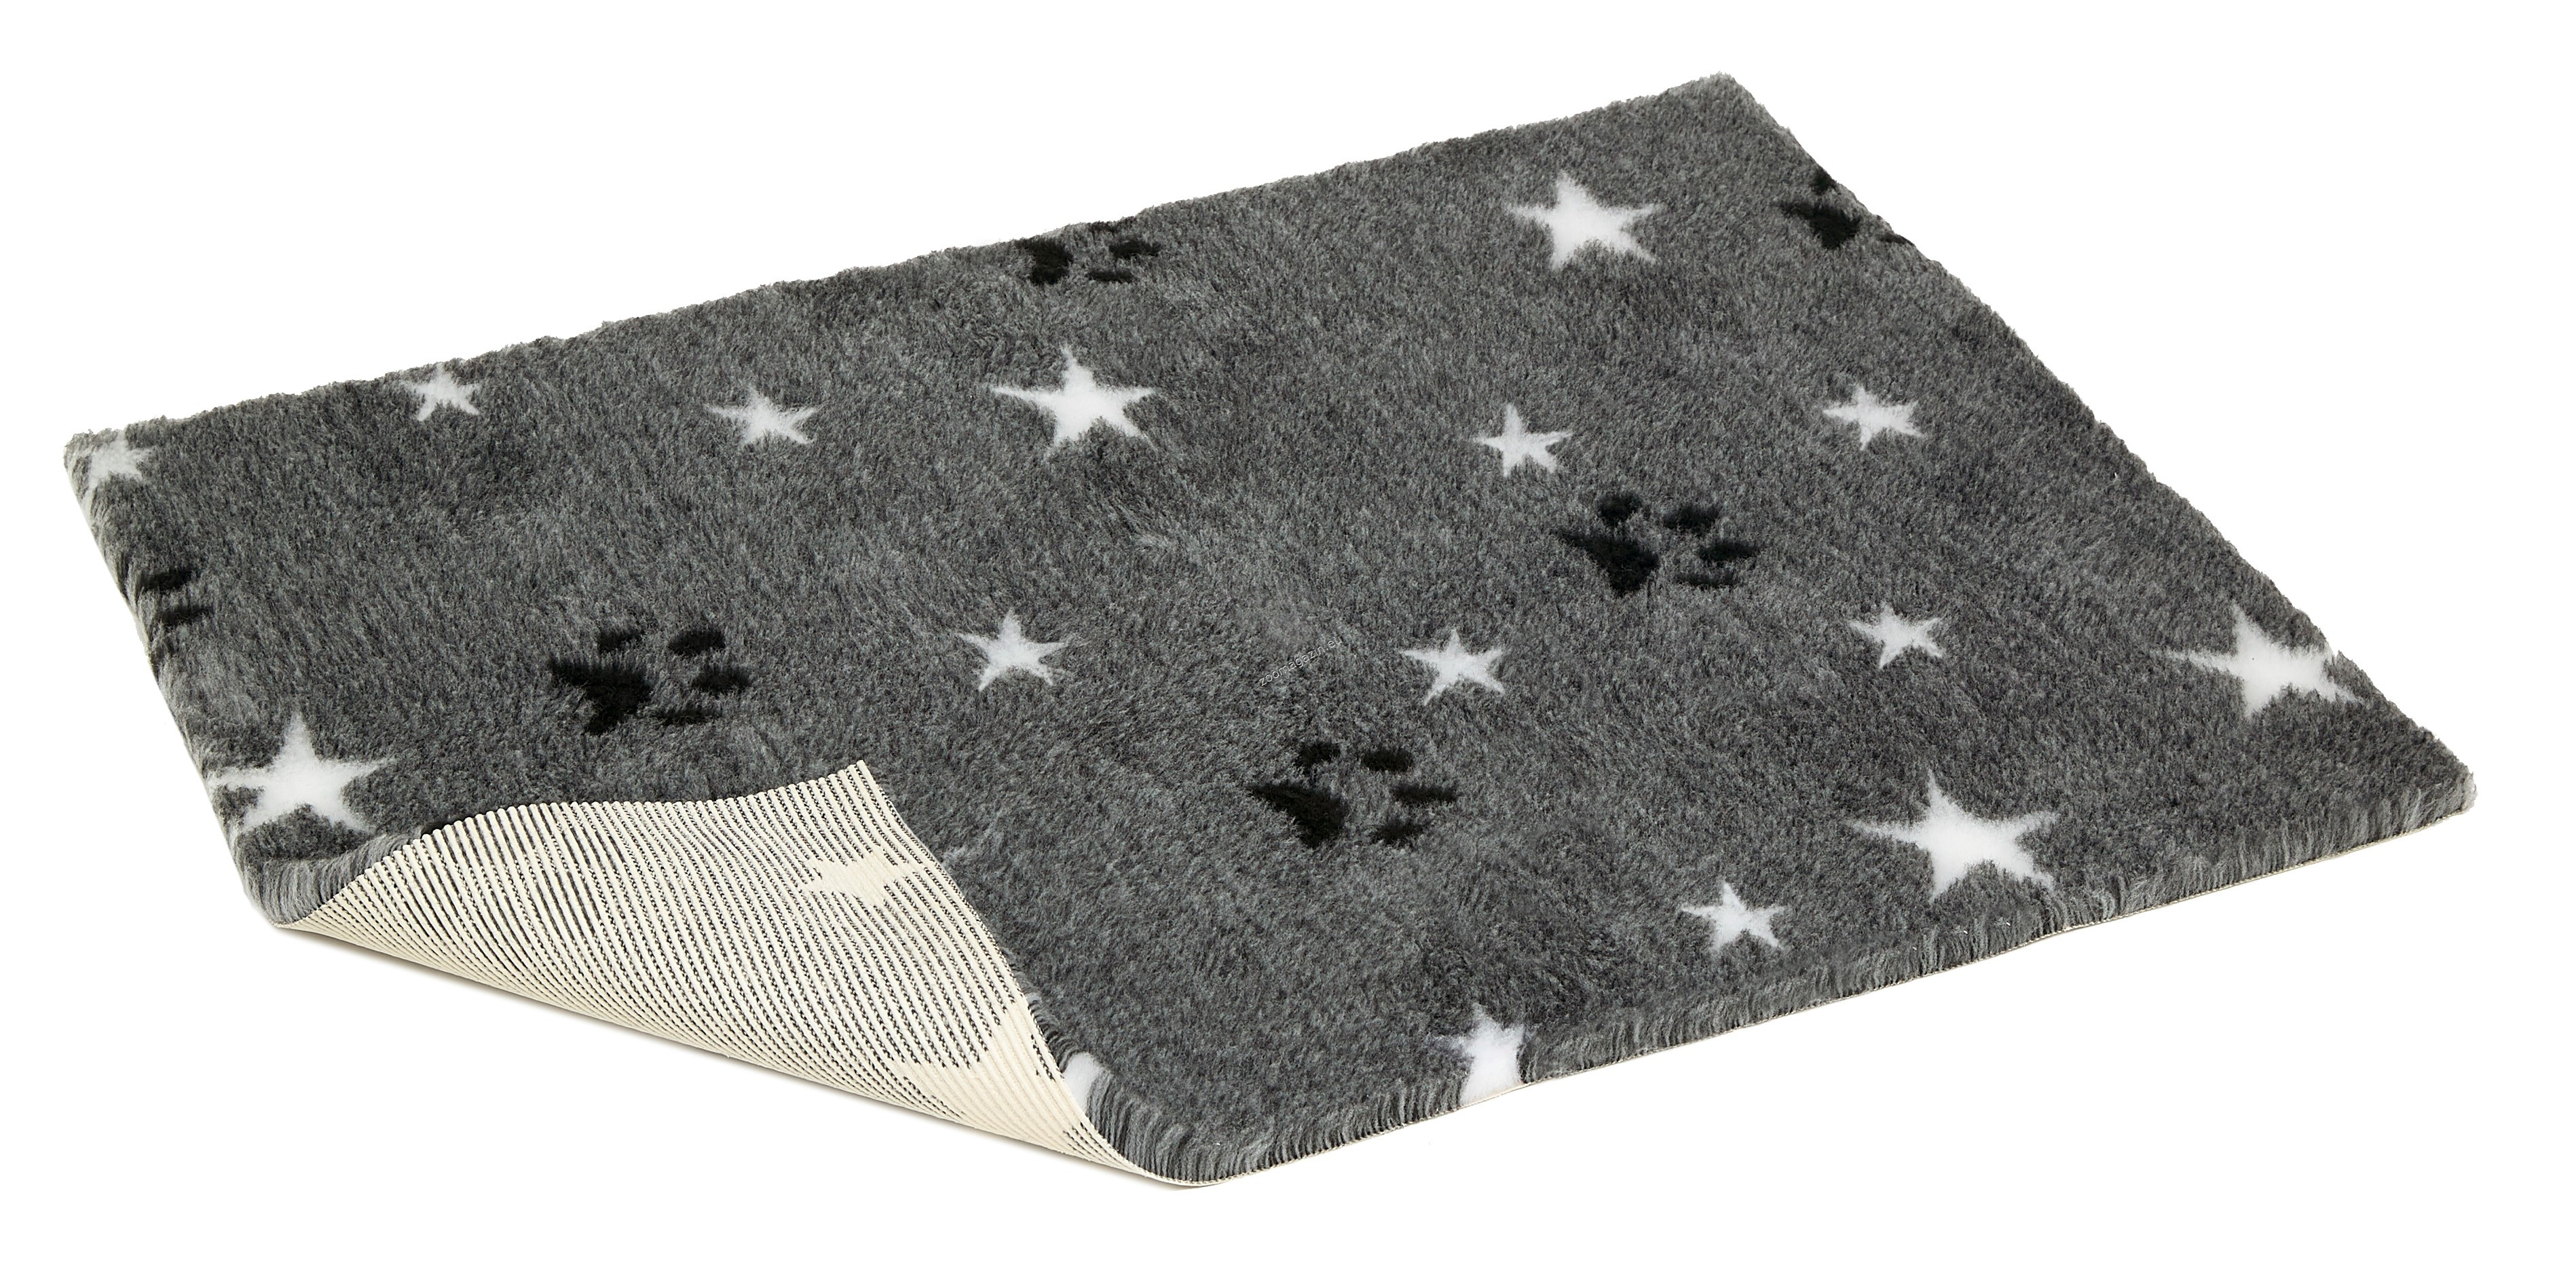 Vetbed Non-Slip Lime Grey with Stars and Paws - мека постелка със слой против пързаляне 90 / 75 см.